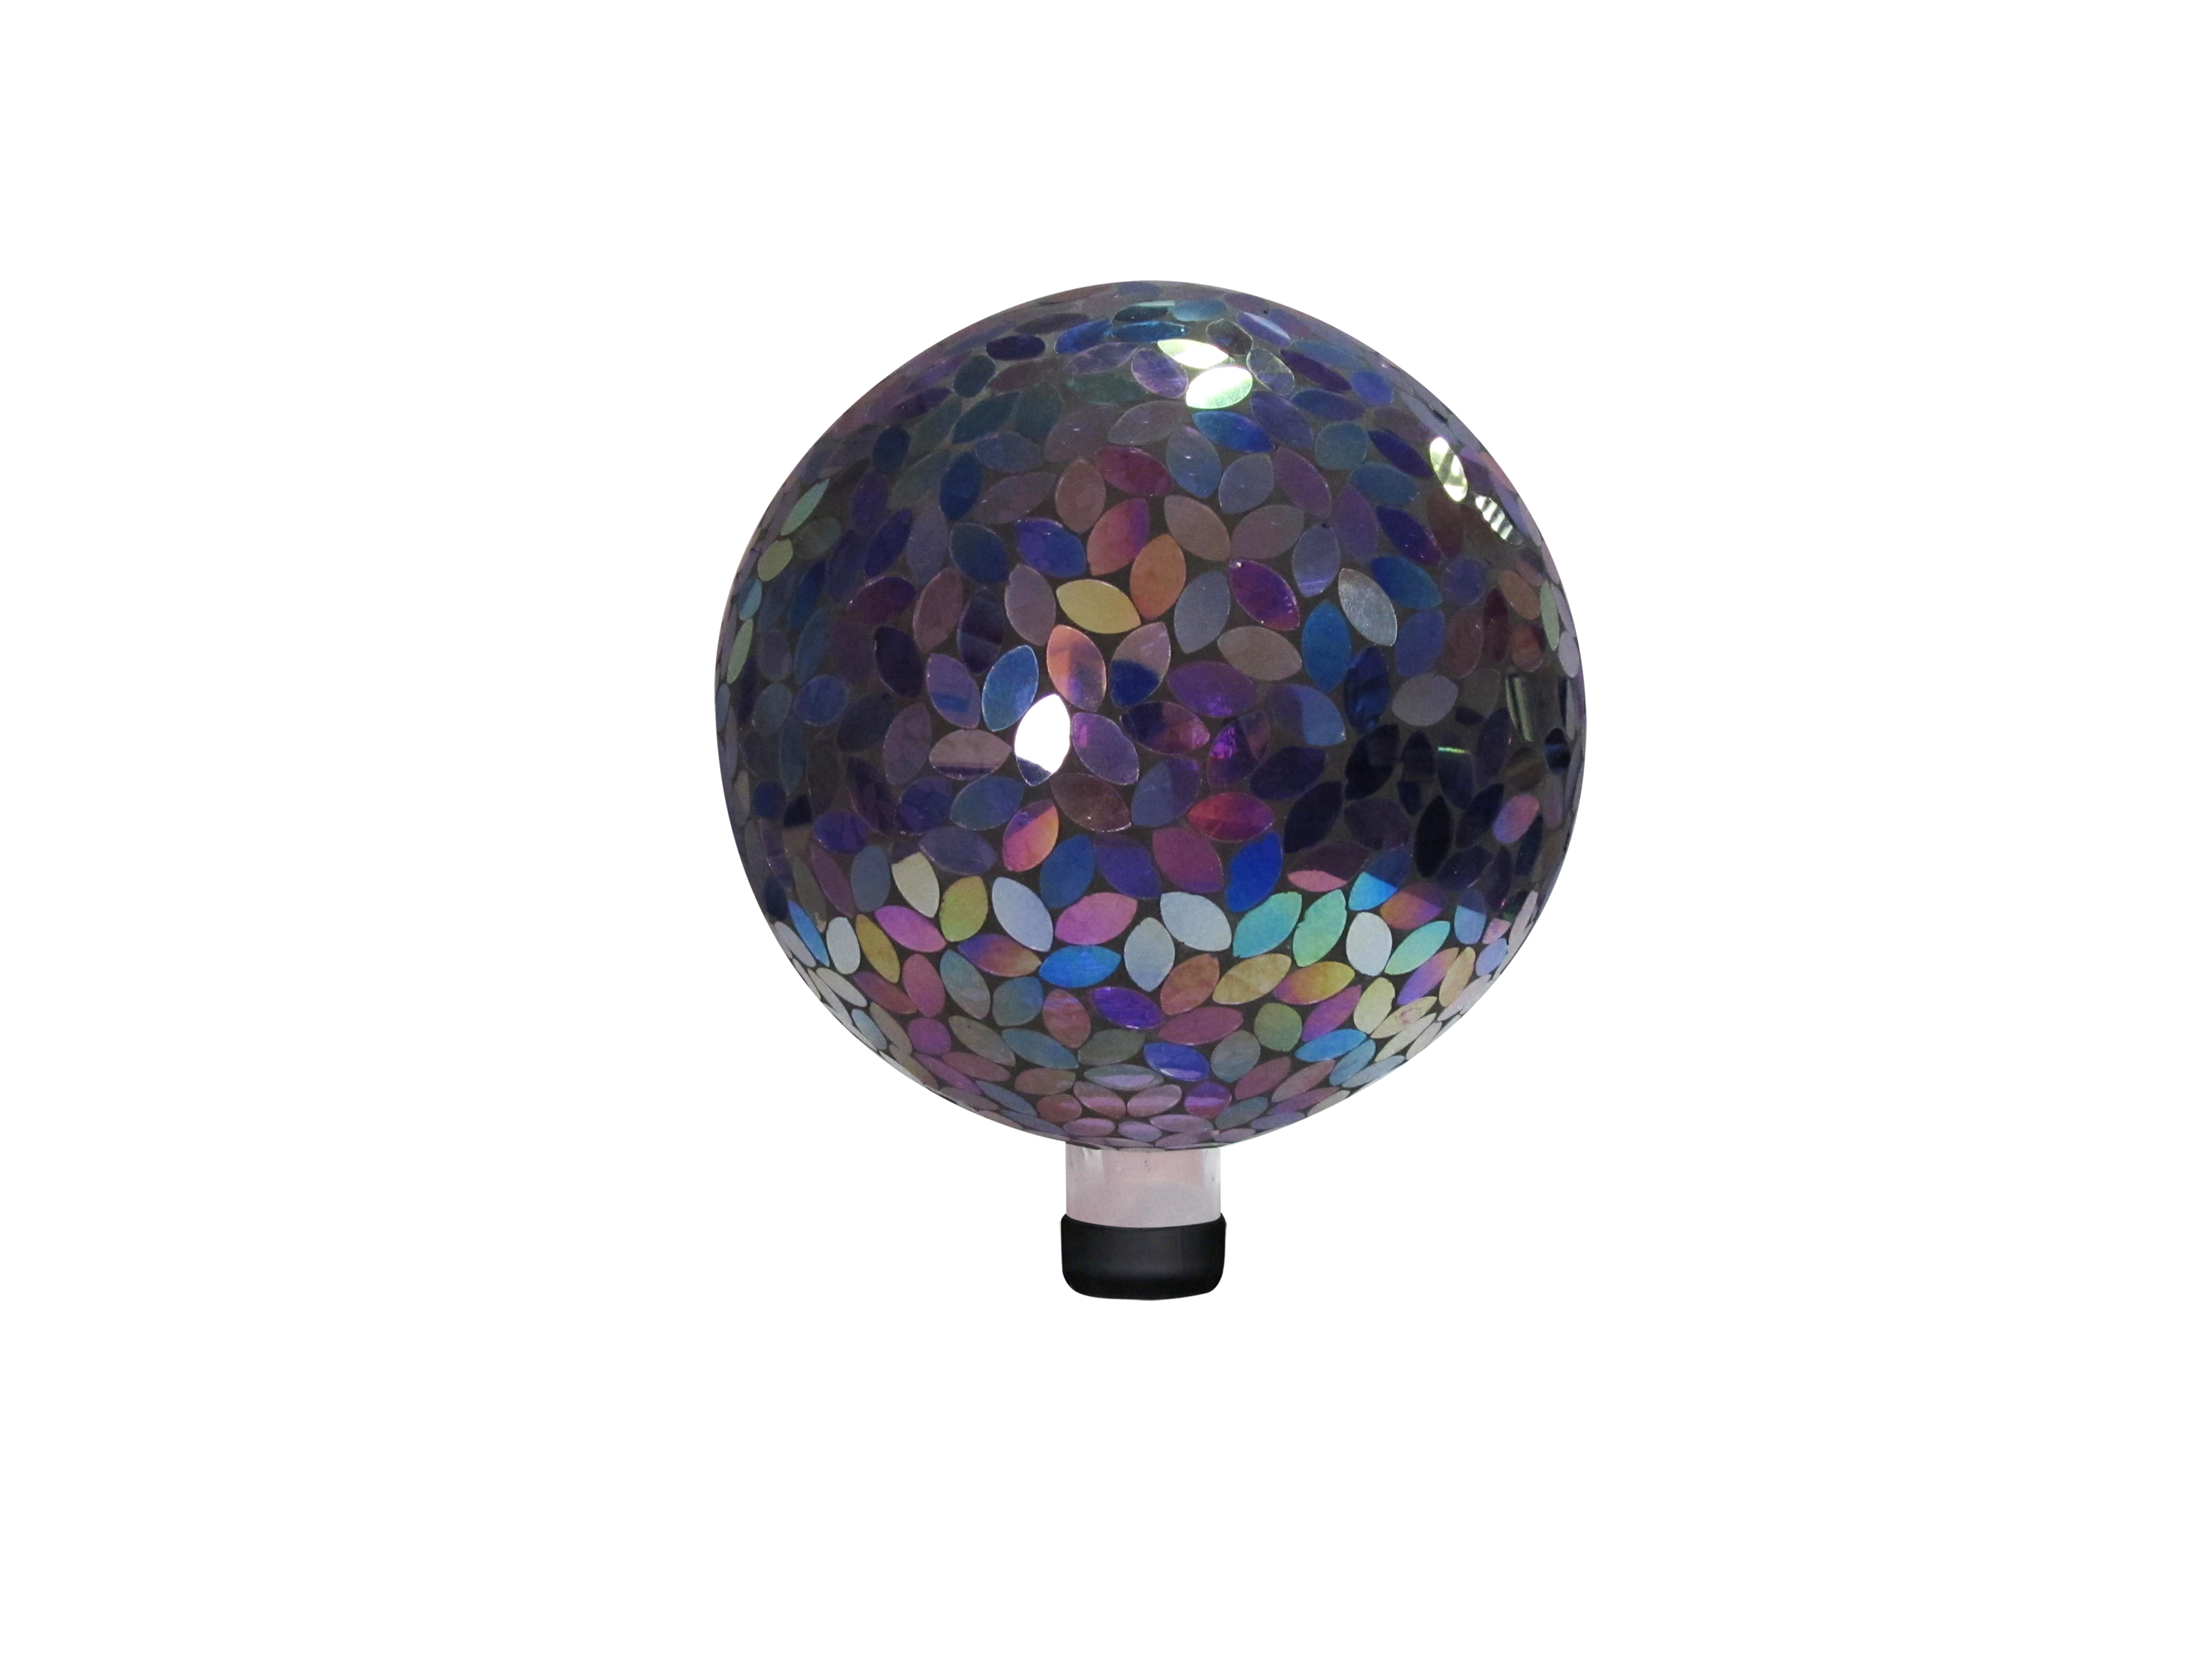 10 Inch Mosaic Gazing Ball Purple by Benzara